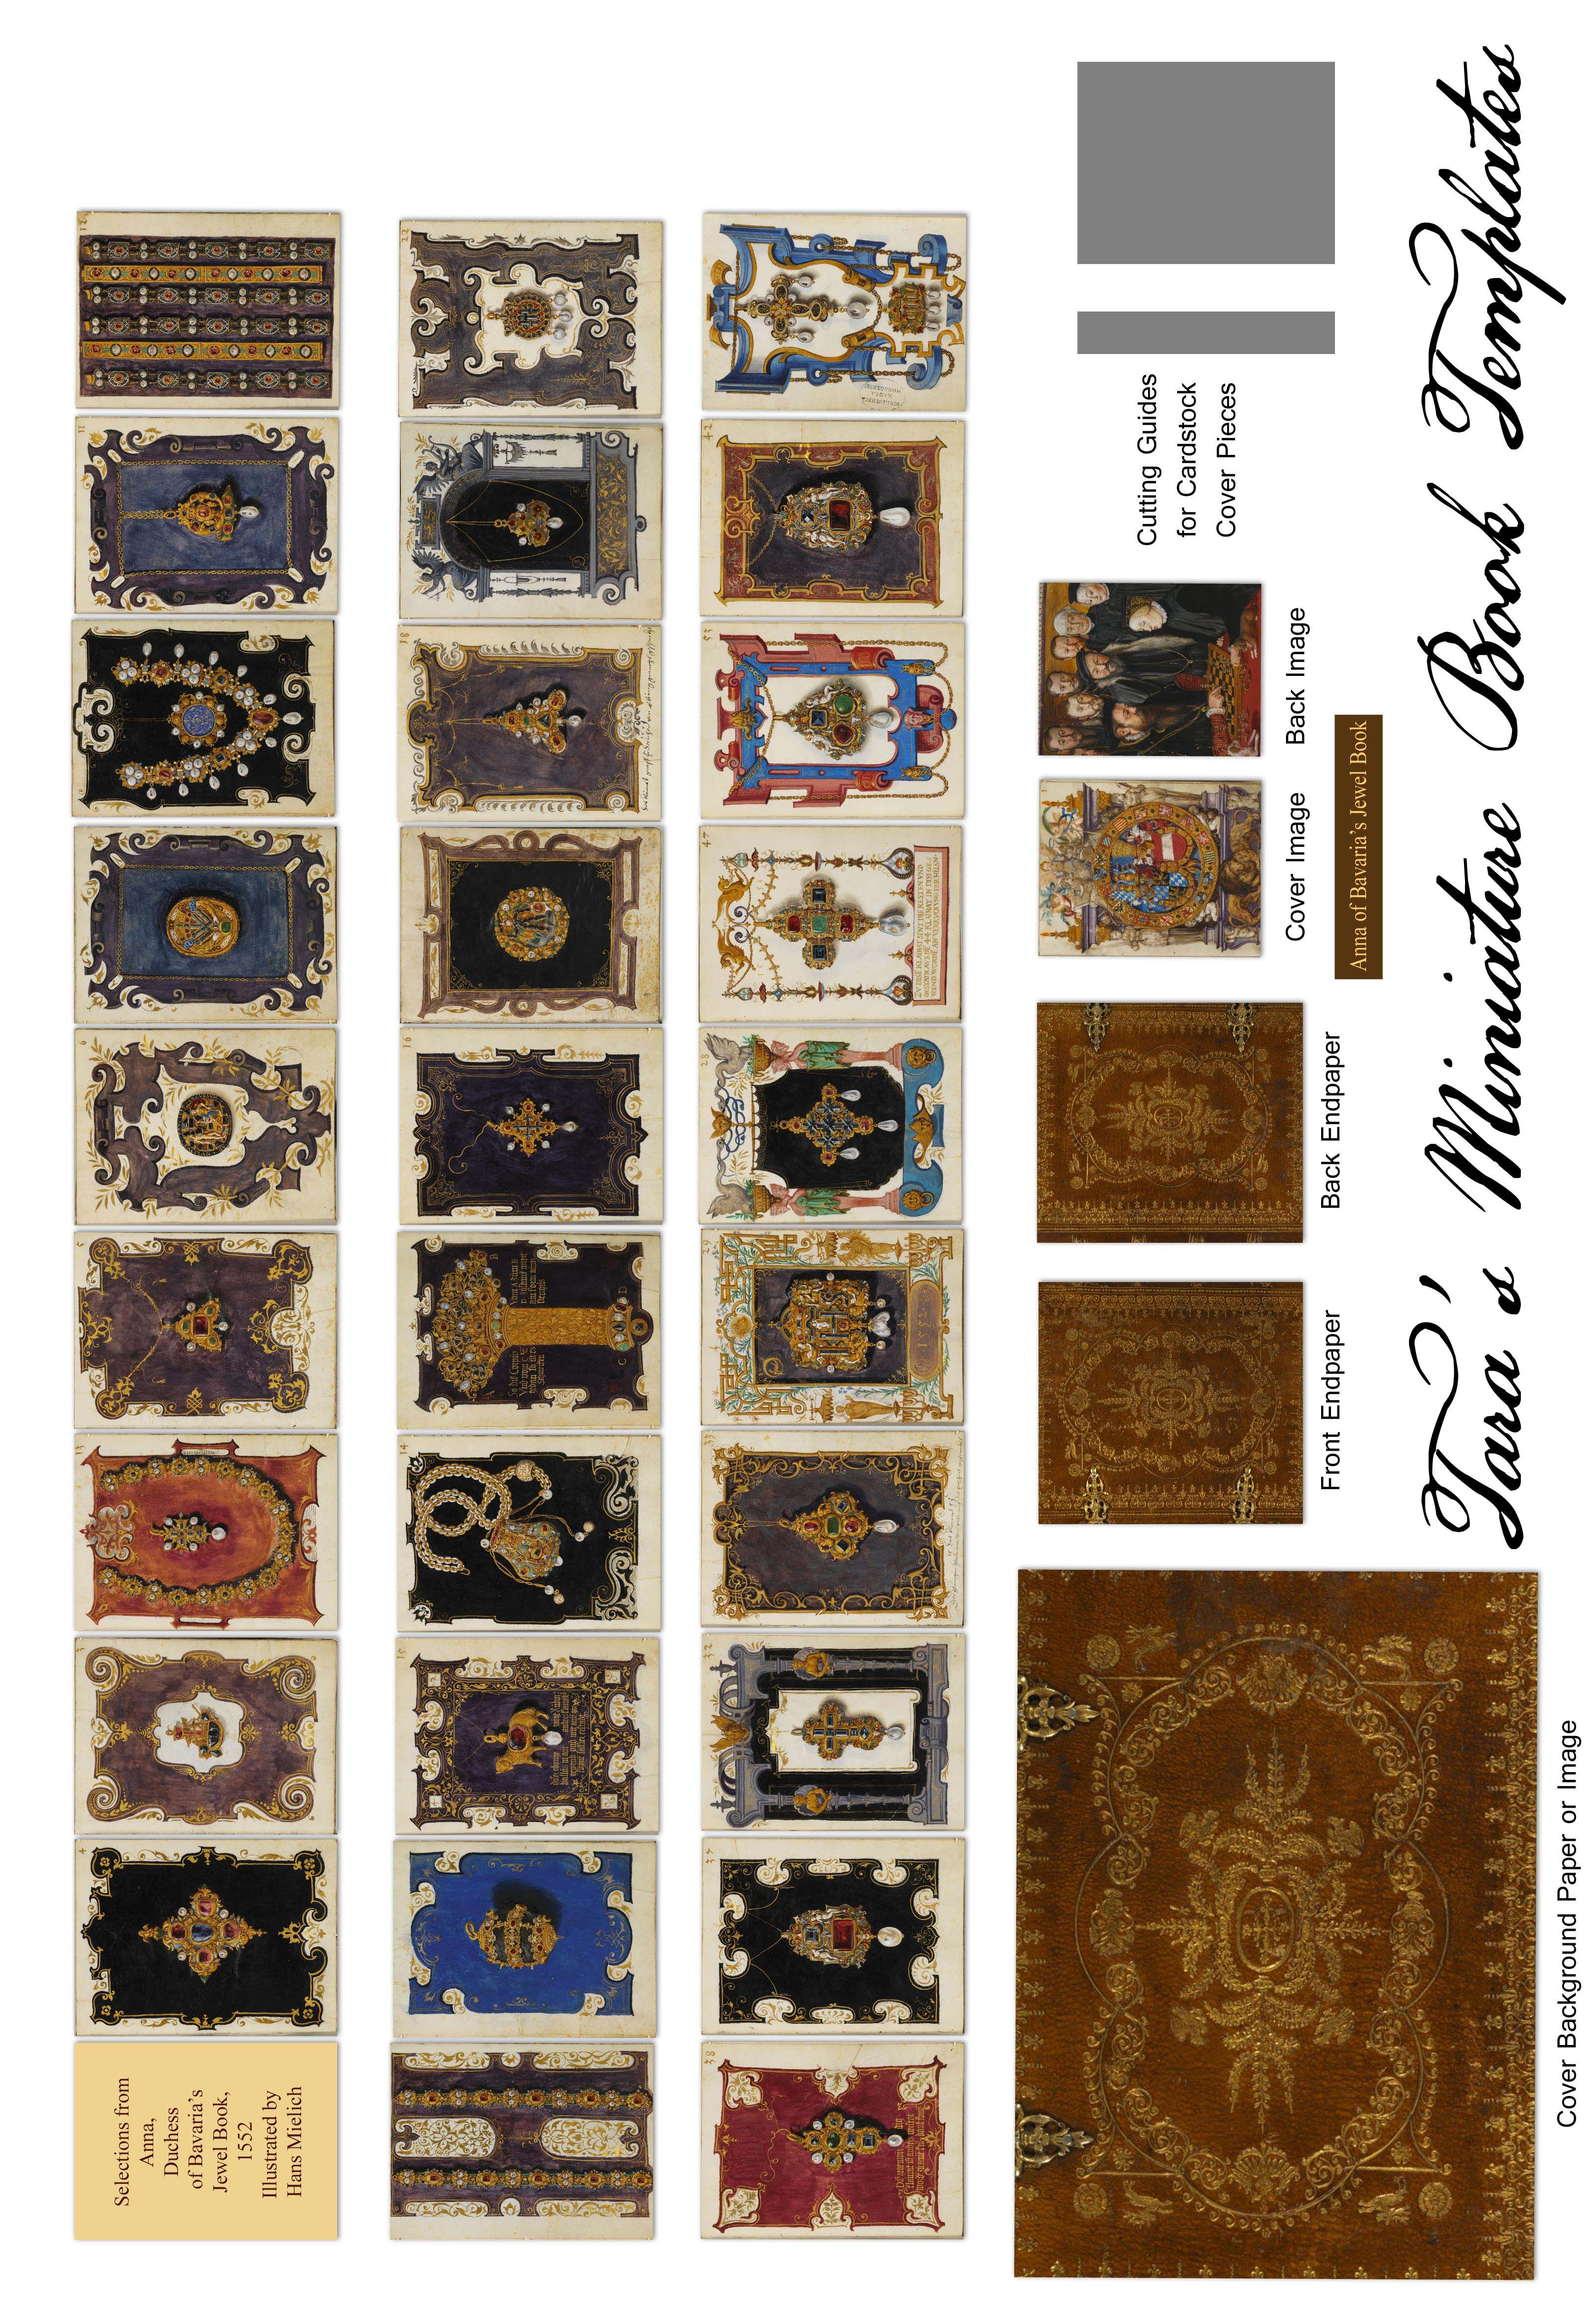 Free Miniature Book Printie With Plates From Anna Of Bavaria's 16Th - Free Printable Miniature Book Covers